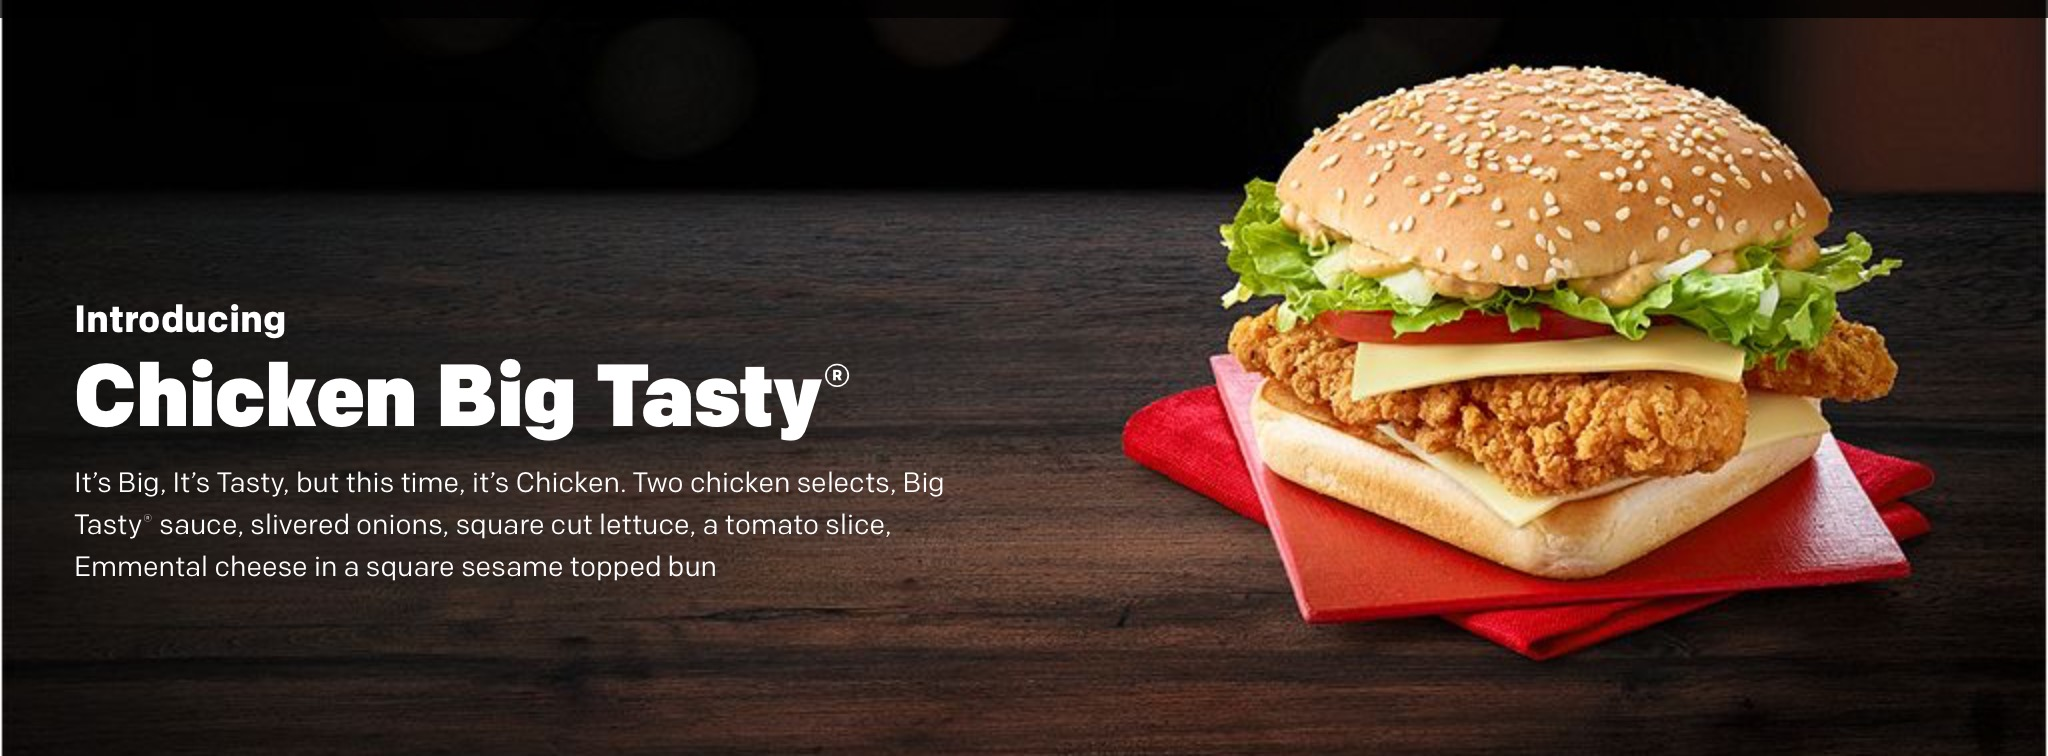 The Big N Tasty is a hamburger sold by the international fast food chain McDonalds It is designed to compete with the Burger King Whopper sandwich A similar